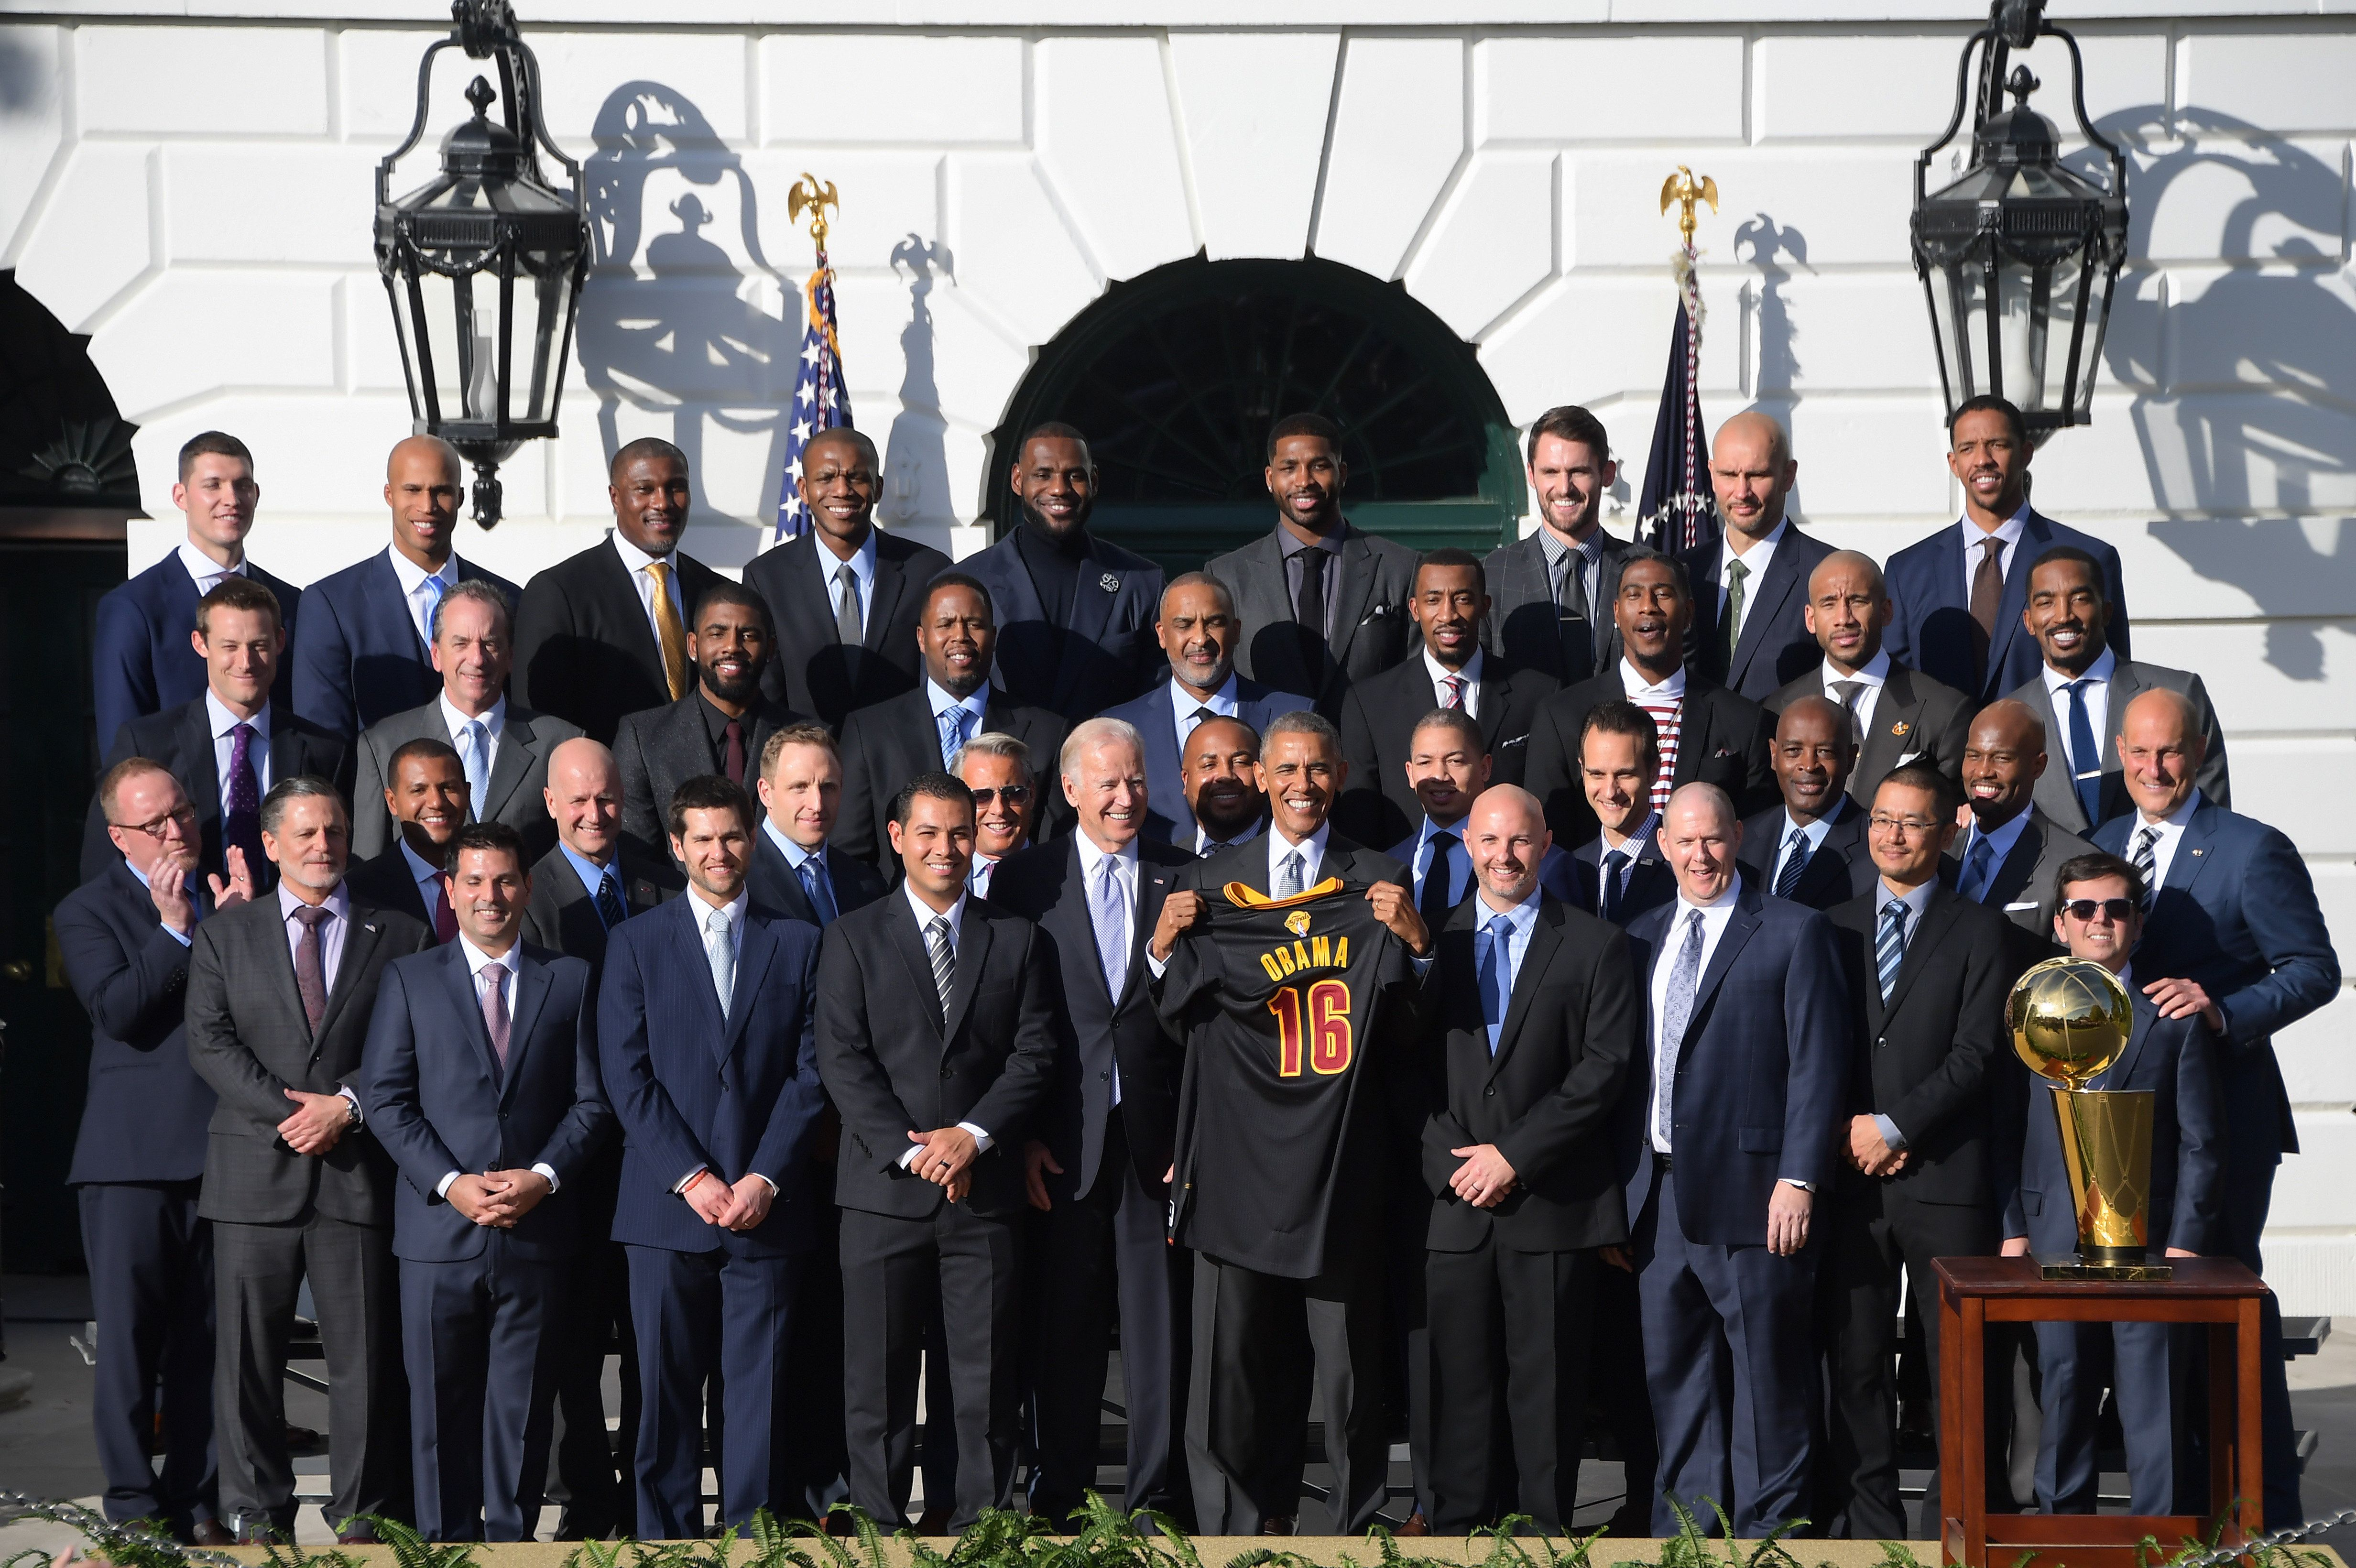 US President Barack Obama (C) and Vice President Joe Biden pose with the 2016 NBA Championship Cleveland Cavaliers at the White House in Washington, DC, November 10, 2016. / AFP / JIM WATSON        (Photo credit should read JIM WATSON/AFP/Getty Images)